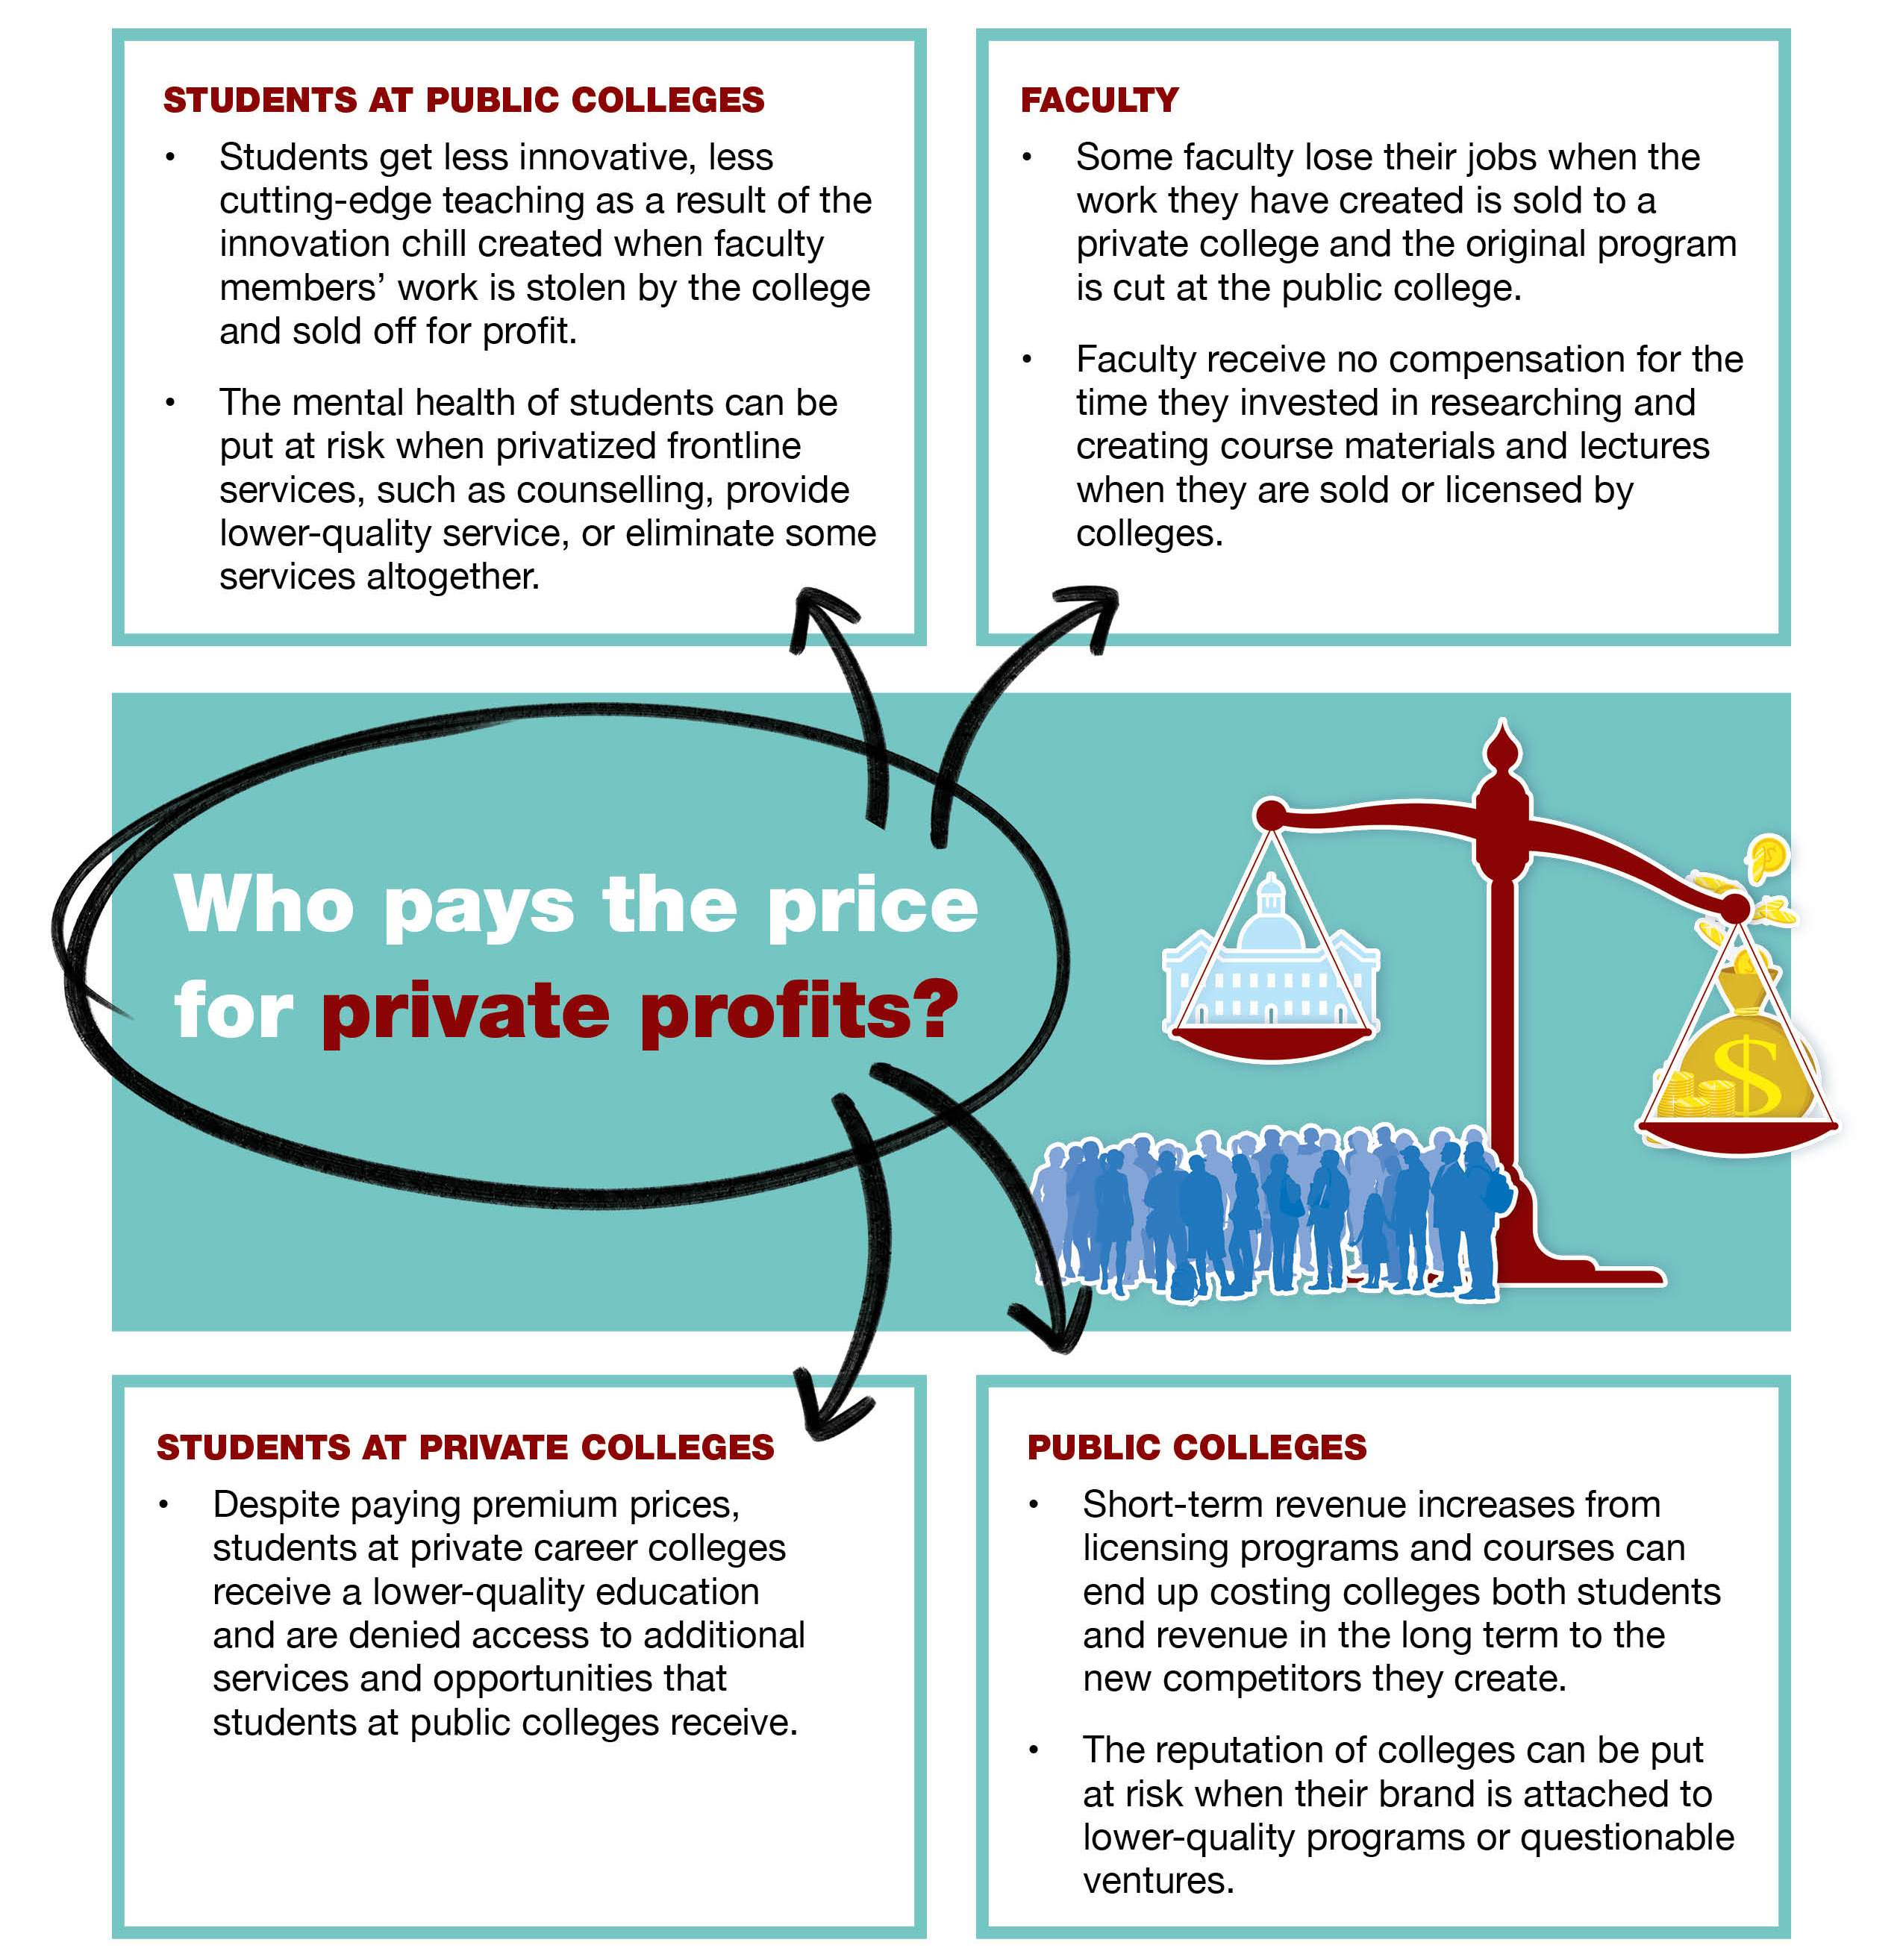 Who pays the price for private profits?  Students at public colleges  Students get less innovative, less cutting-edge teaching as a result of the innovation chill created when faculty members' work is stolen by the college and sold off for profit. The mental health of students can be put at risk when privatized frontline services, such as counselling, provide lower-quality service, or eliminate some services altogether. Faculty  Some faculty lose their jobs when the work they have created is sold to a private college and the original program is cut at the public college. Faculty receive no compensation for the time they invested in researching and creating course materials and lectures when they are sold or licensed by colleges. Students at private colleges  Despite paying premium prices, students at private career colleges receive a lower-quality education and are denied access to additional services and opportunities that students at public colleges receive. Public colleges  Short-term revenue increases from licensing programs and courses can end up costing colleges both students and revenue in the long term to the new competitors they create. The reputation of colleges can be put at risk when their brand is attached to lower-quality programs or questionable ventures.